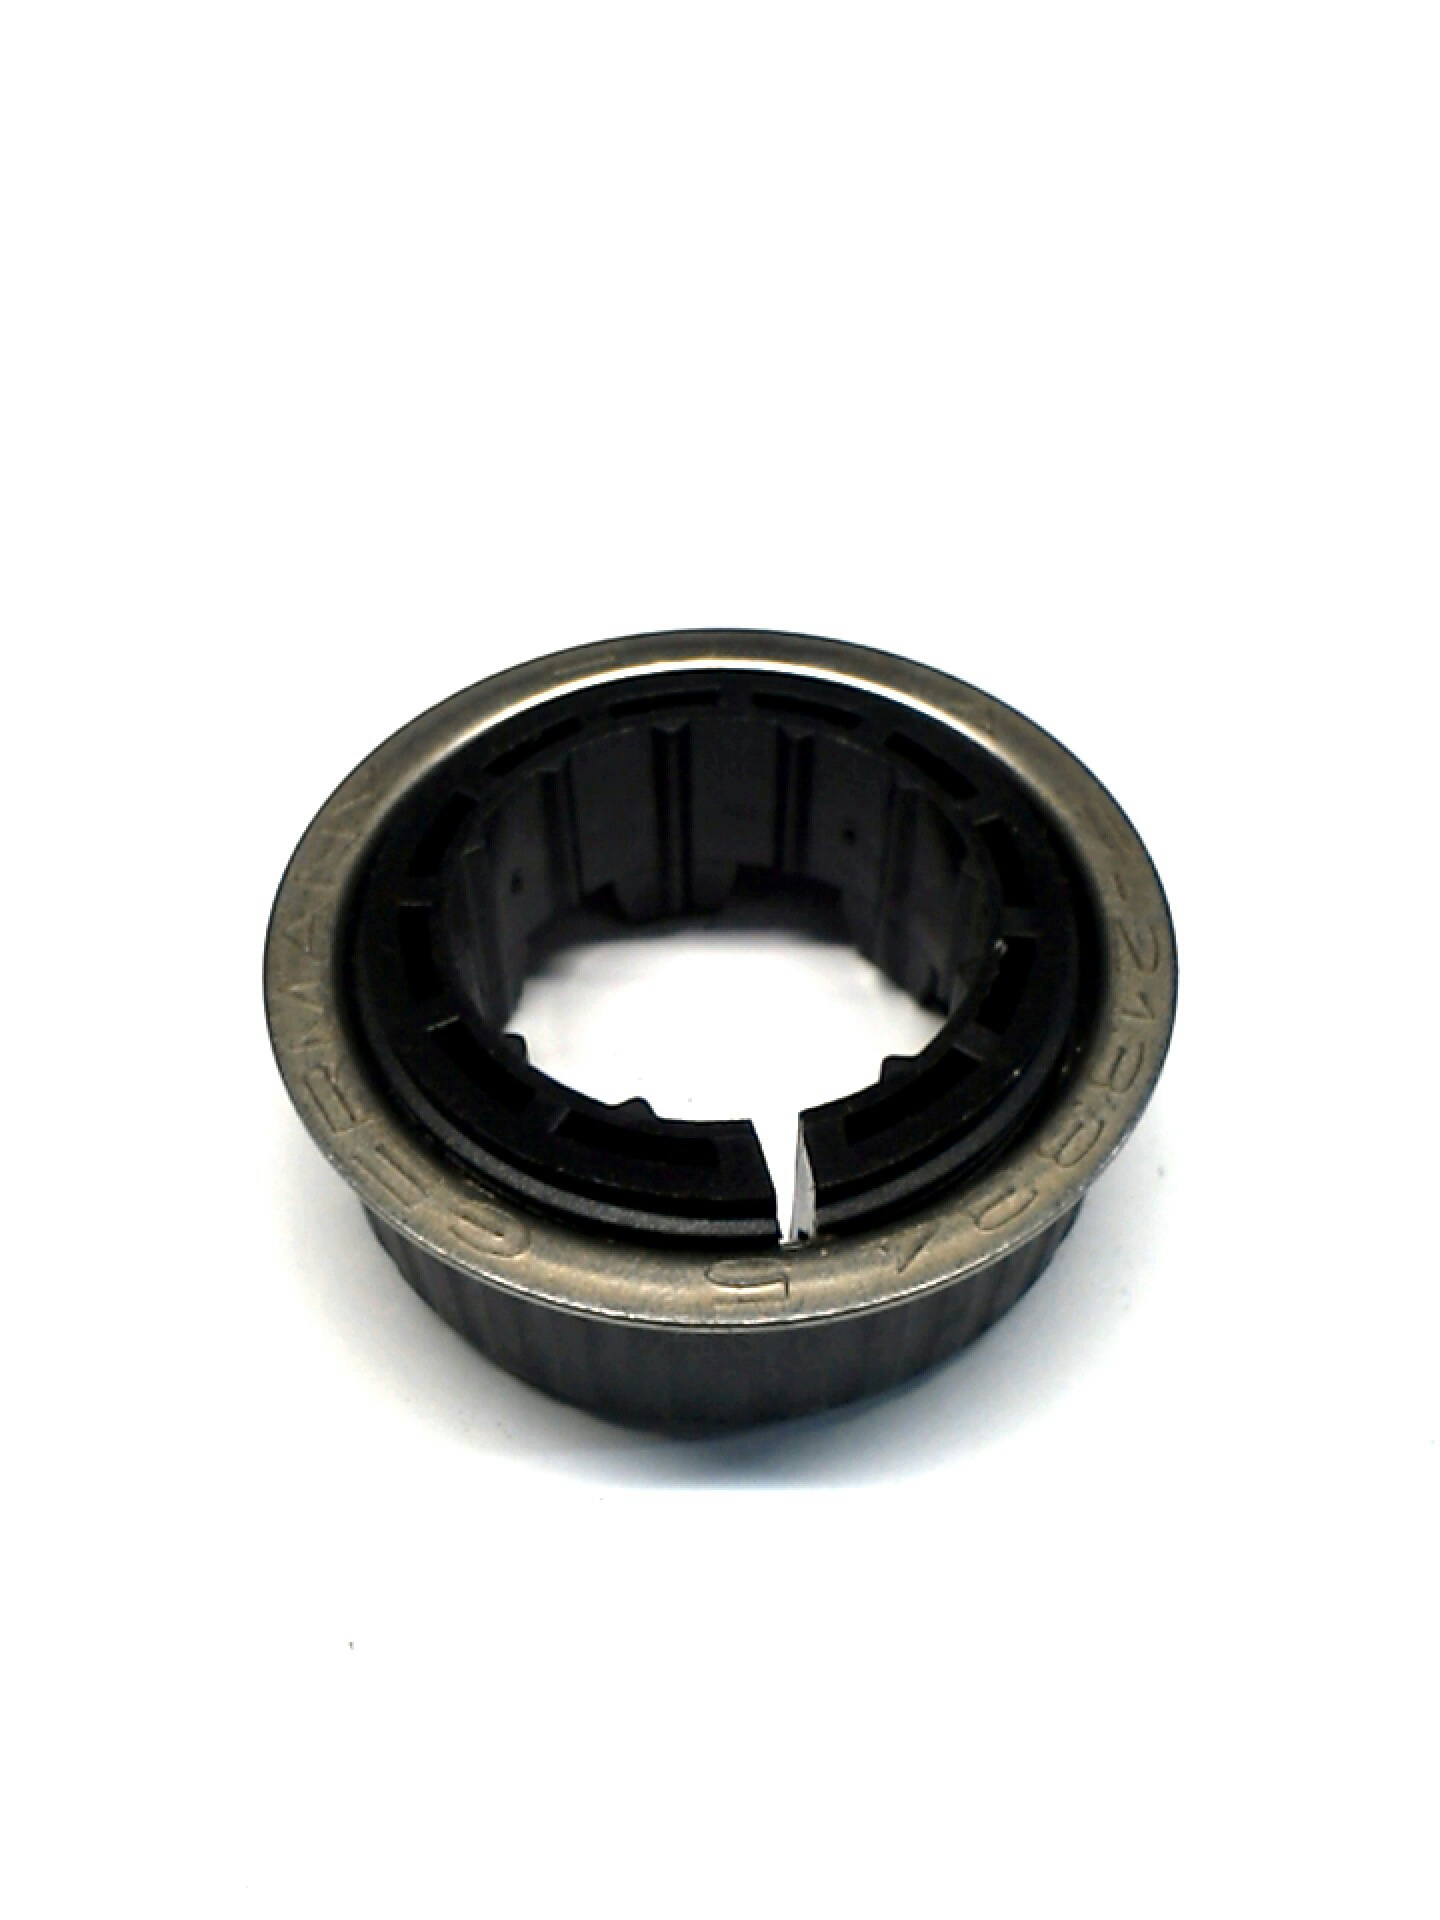 Bmw 528i Steering Spindle Bearing Plastic